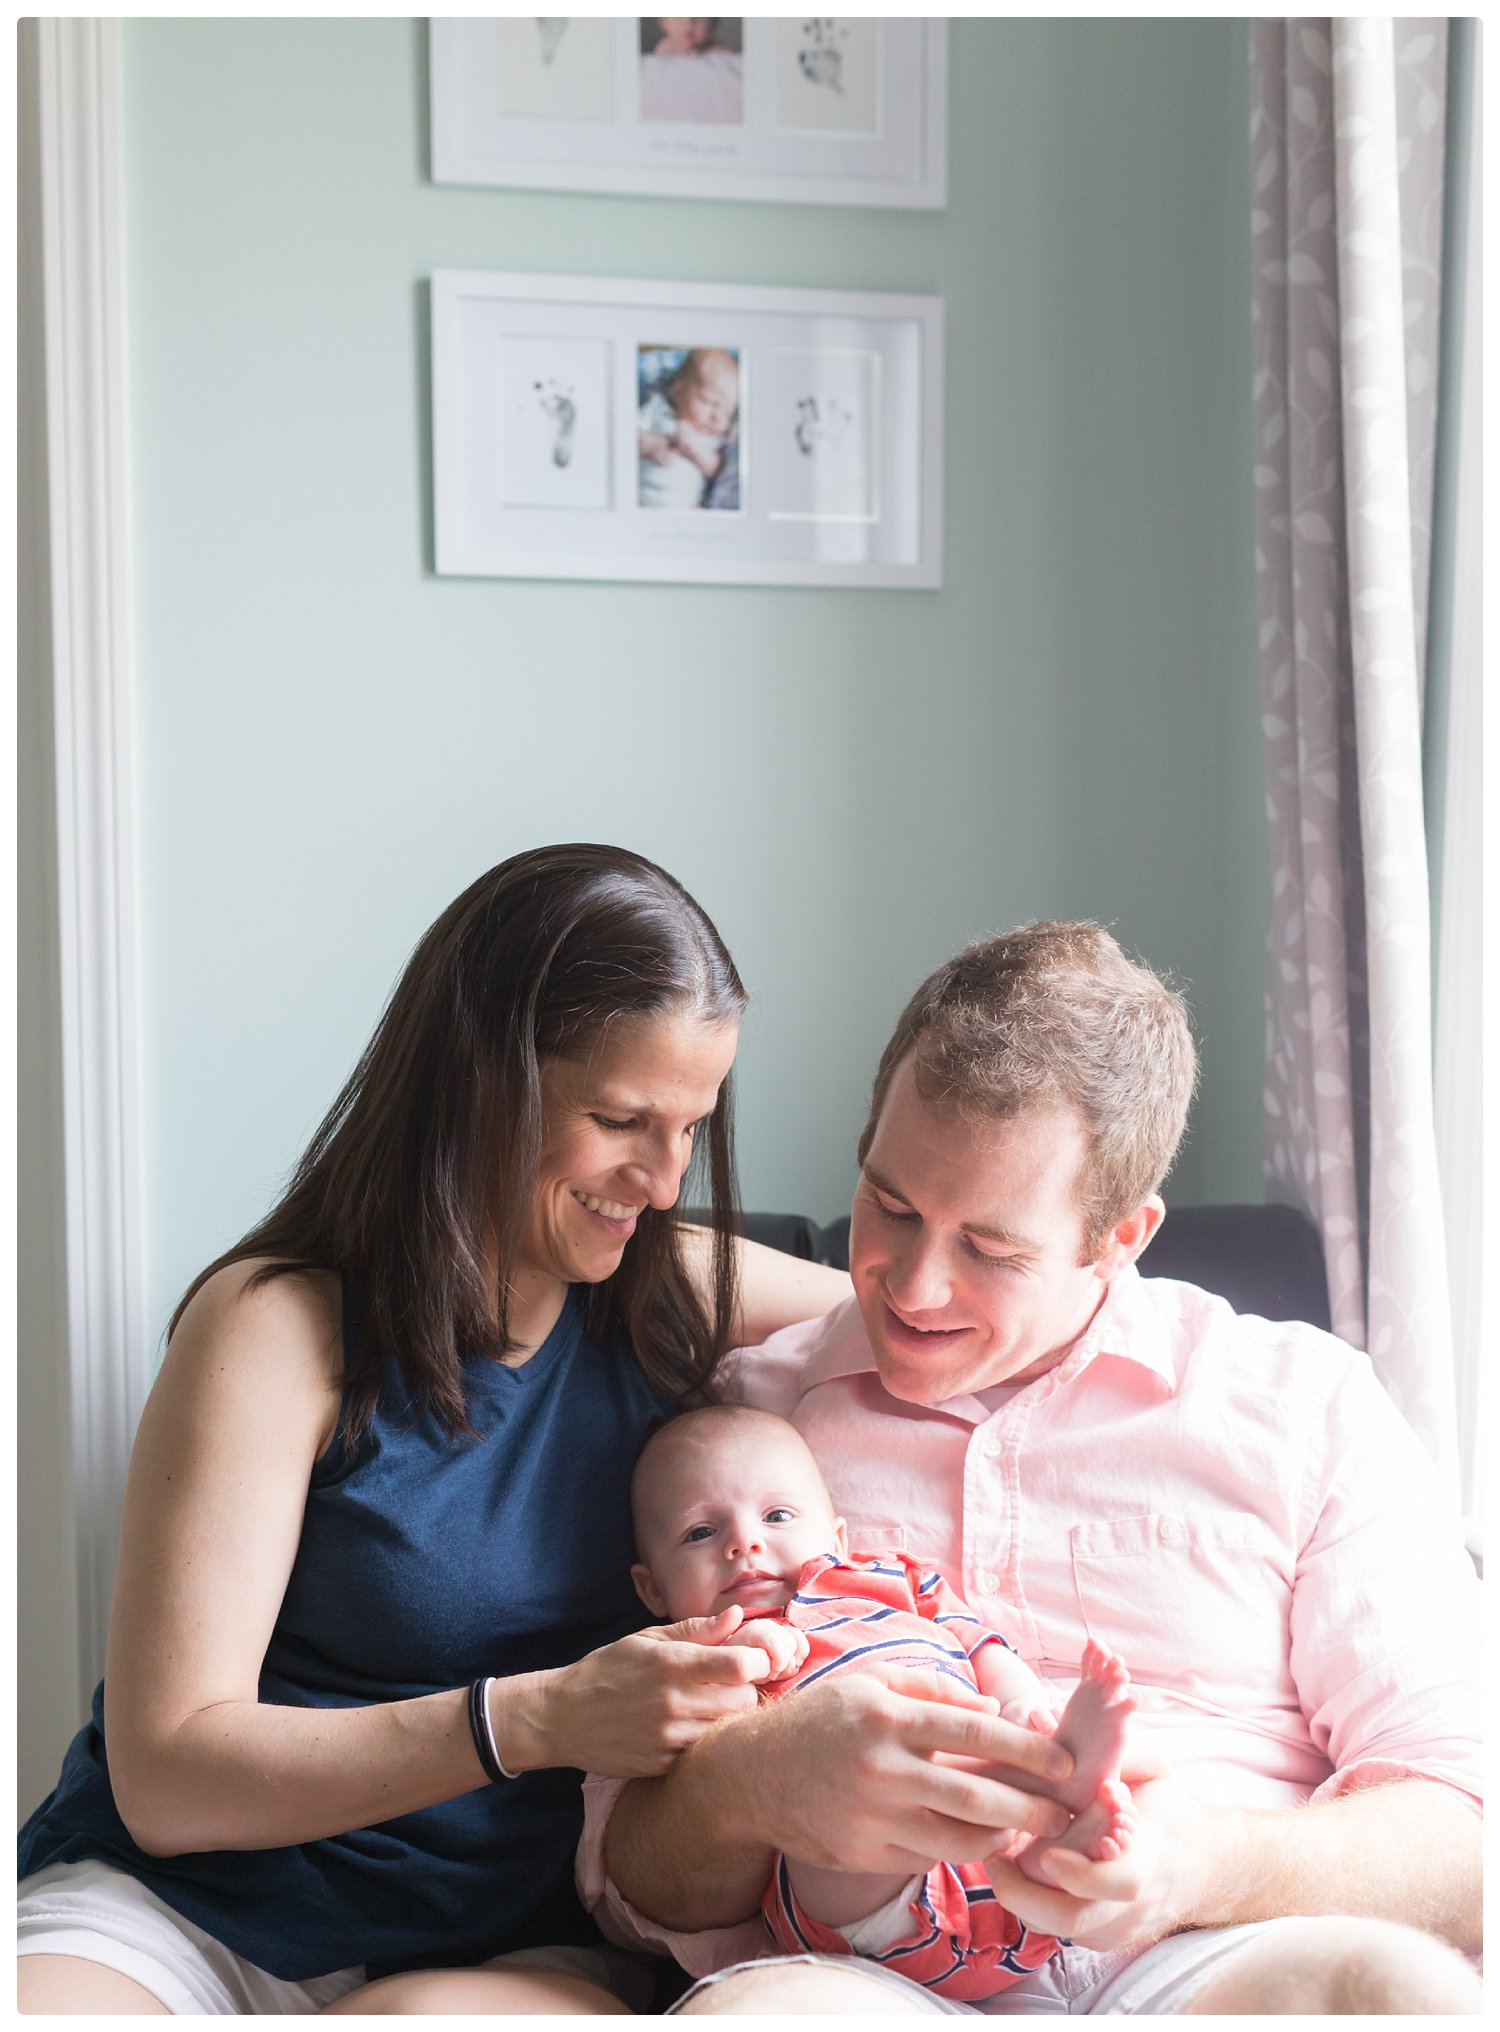 Mom and Dad hold newborn during in-home relaxed newborn photo session in Massachusetts